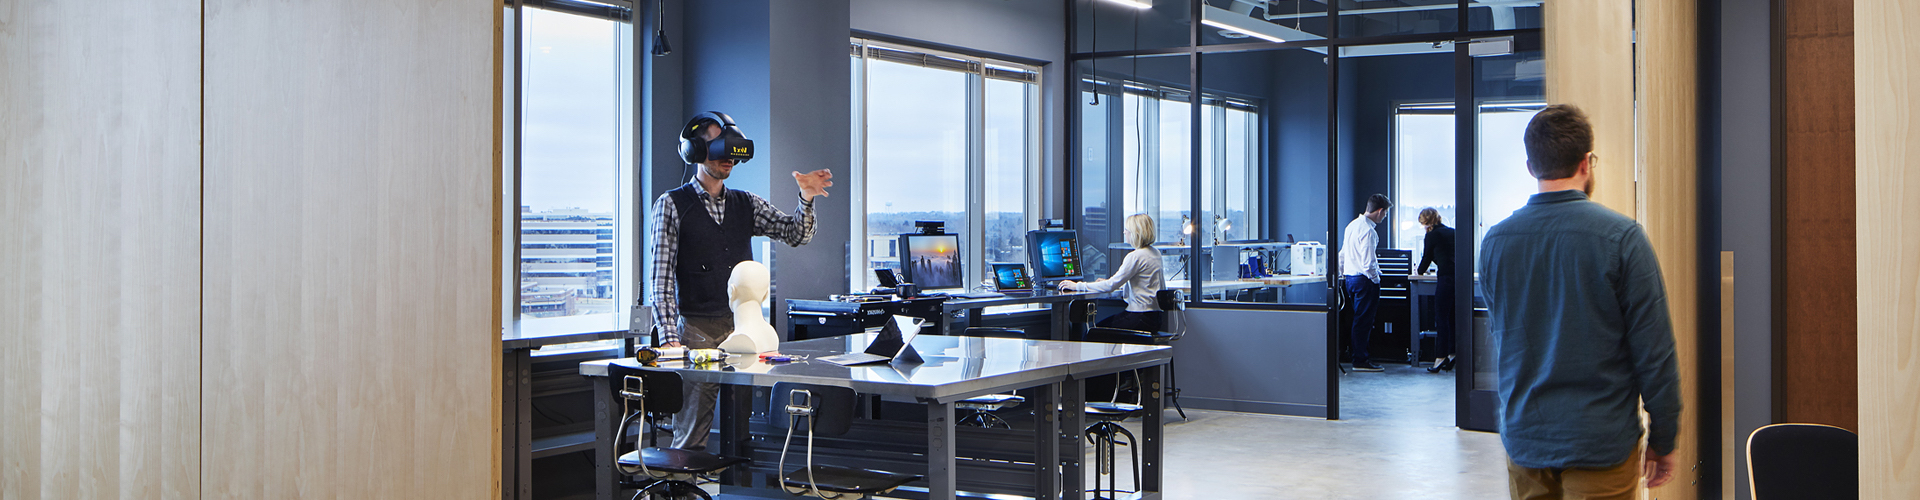 Man using HoloLens and woman sitting at a computer.